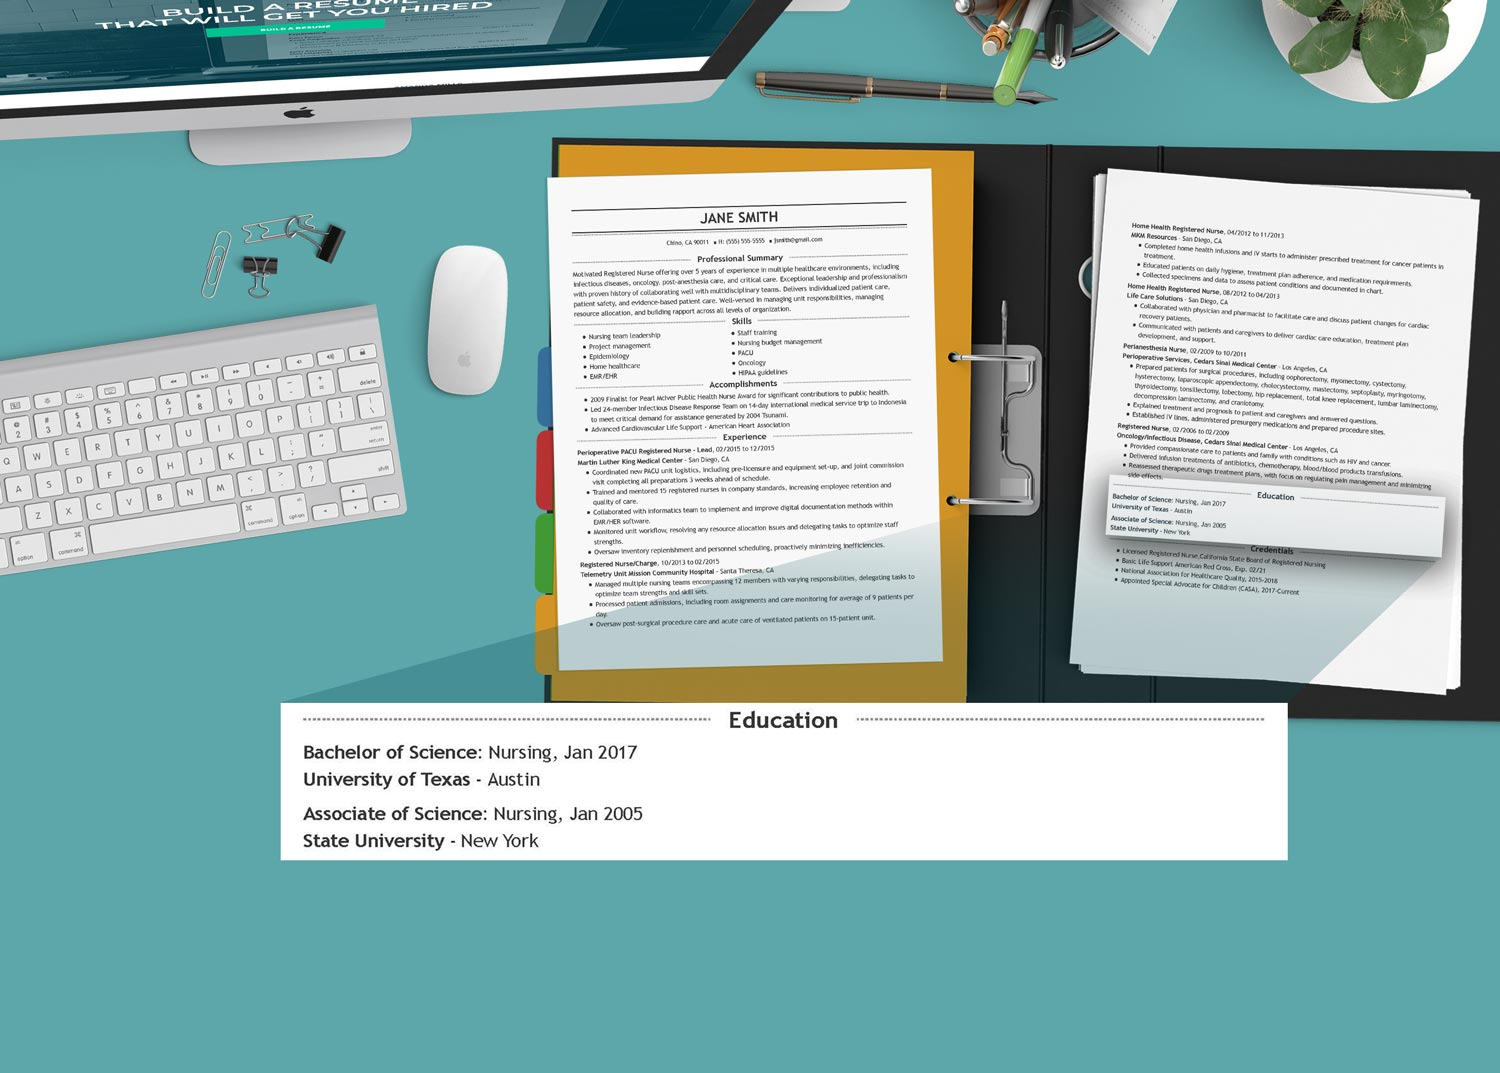 nurse resume writing: the education section